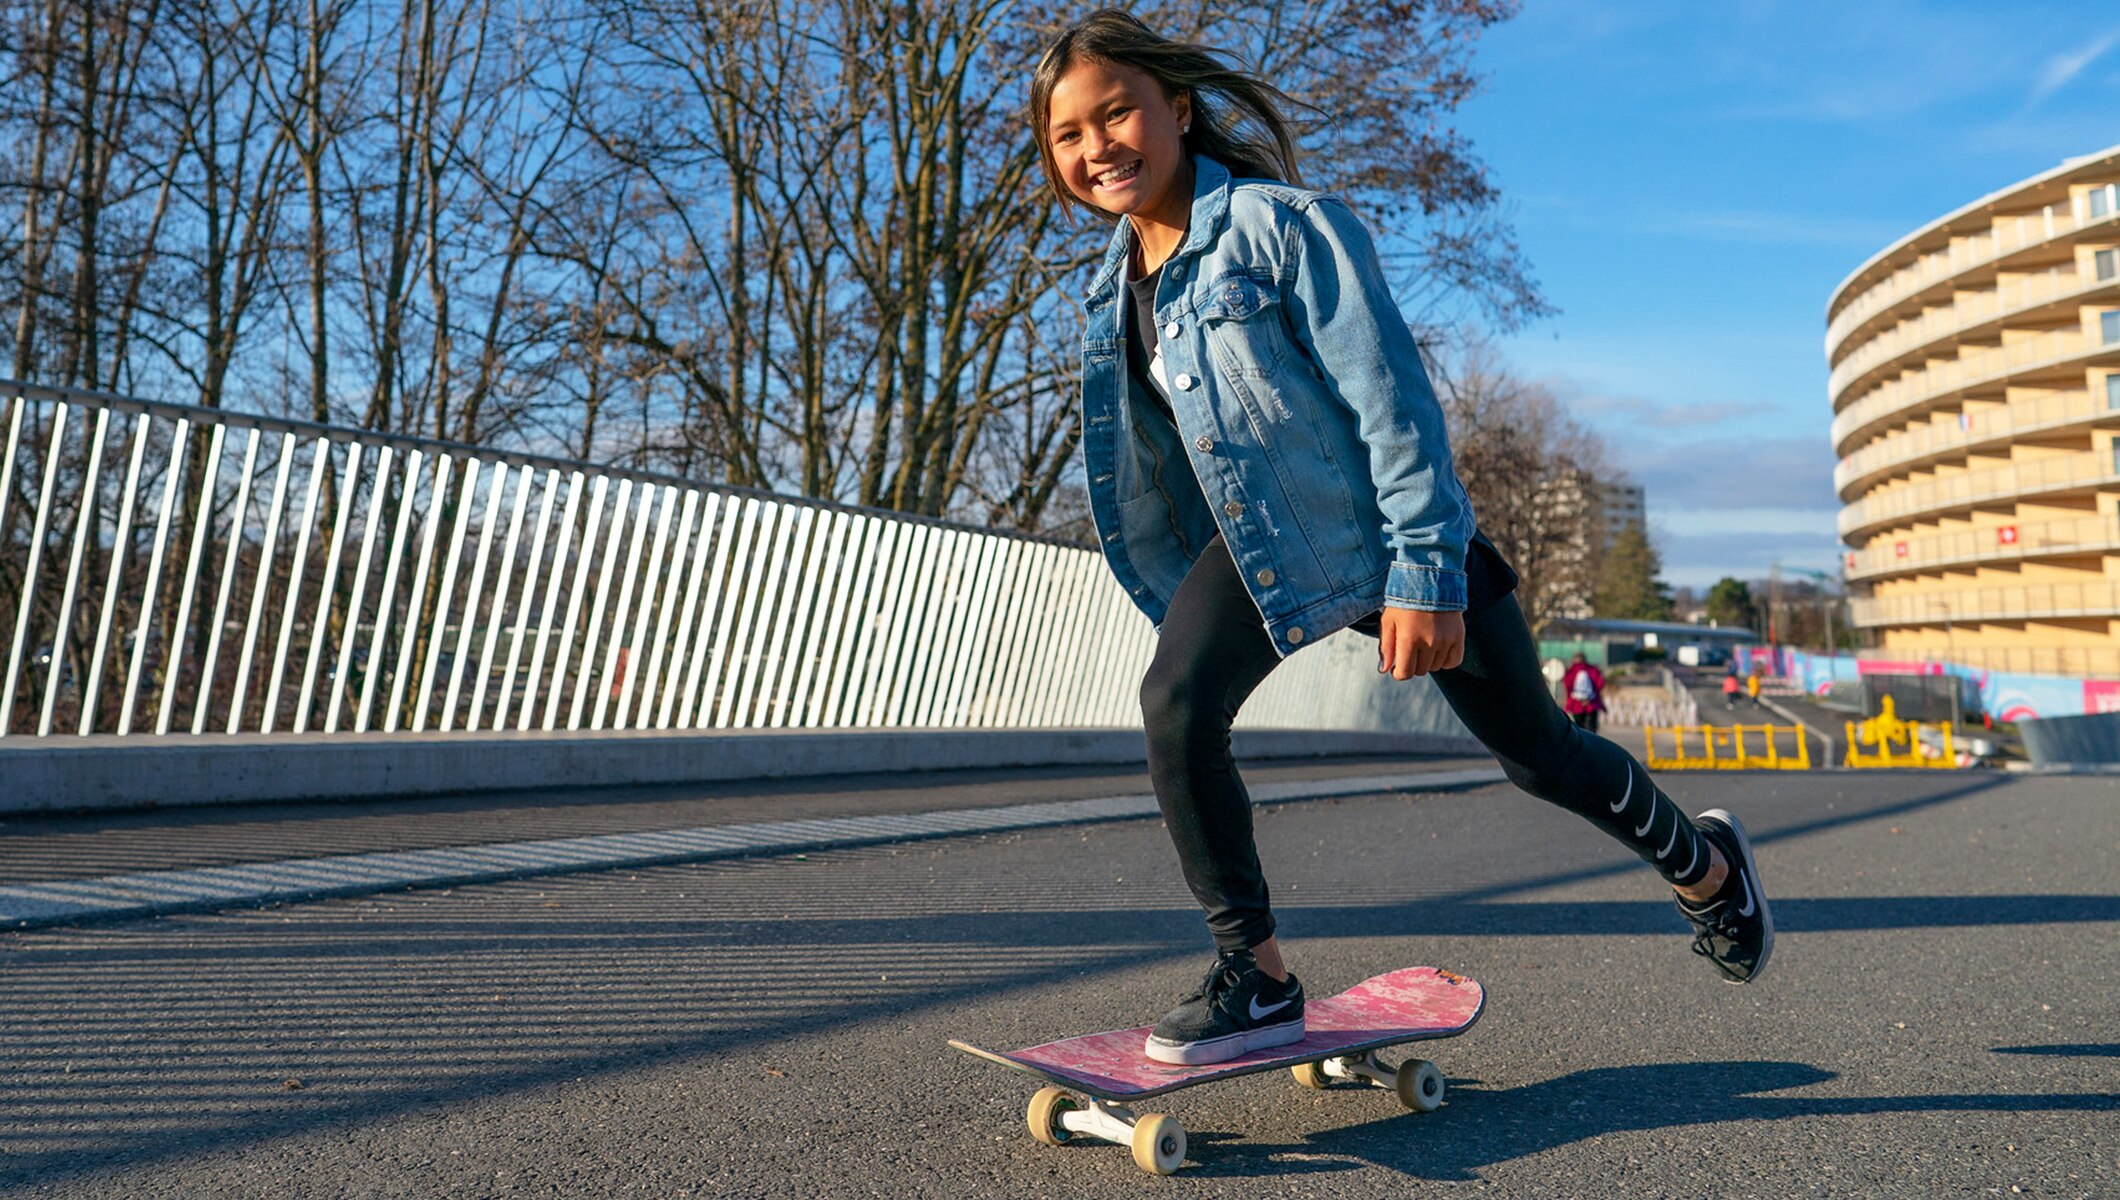 11-Year-Old Skateboarding Phenom Sky Brown May Be Heading To The 2020 Tokyo Summer Olympics